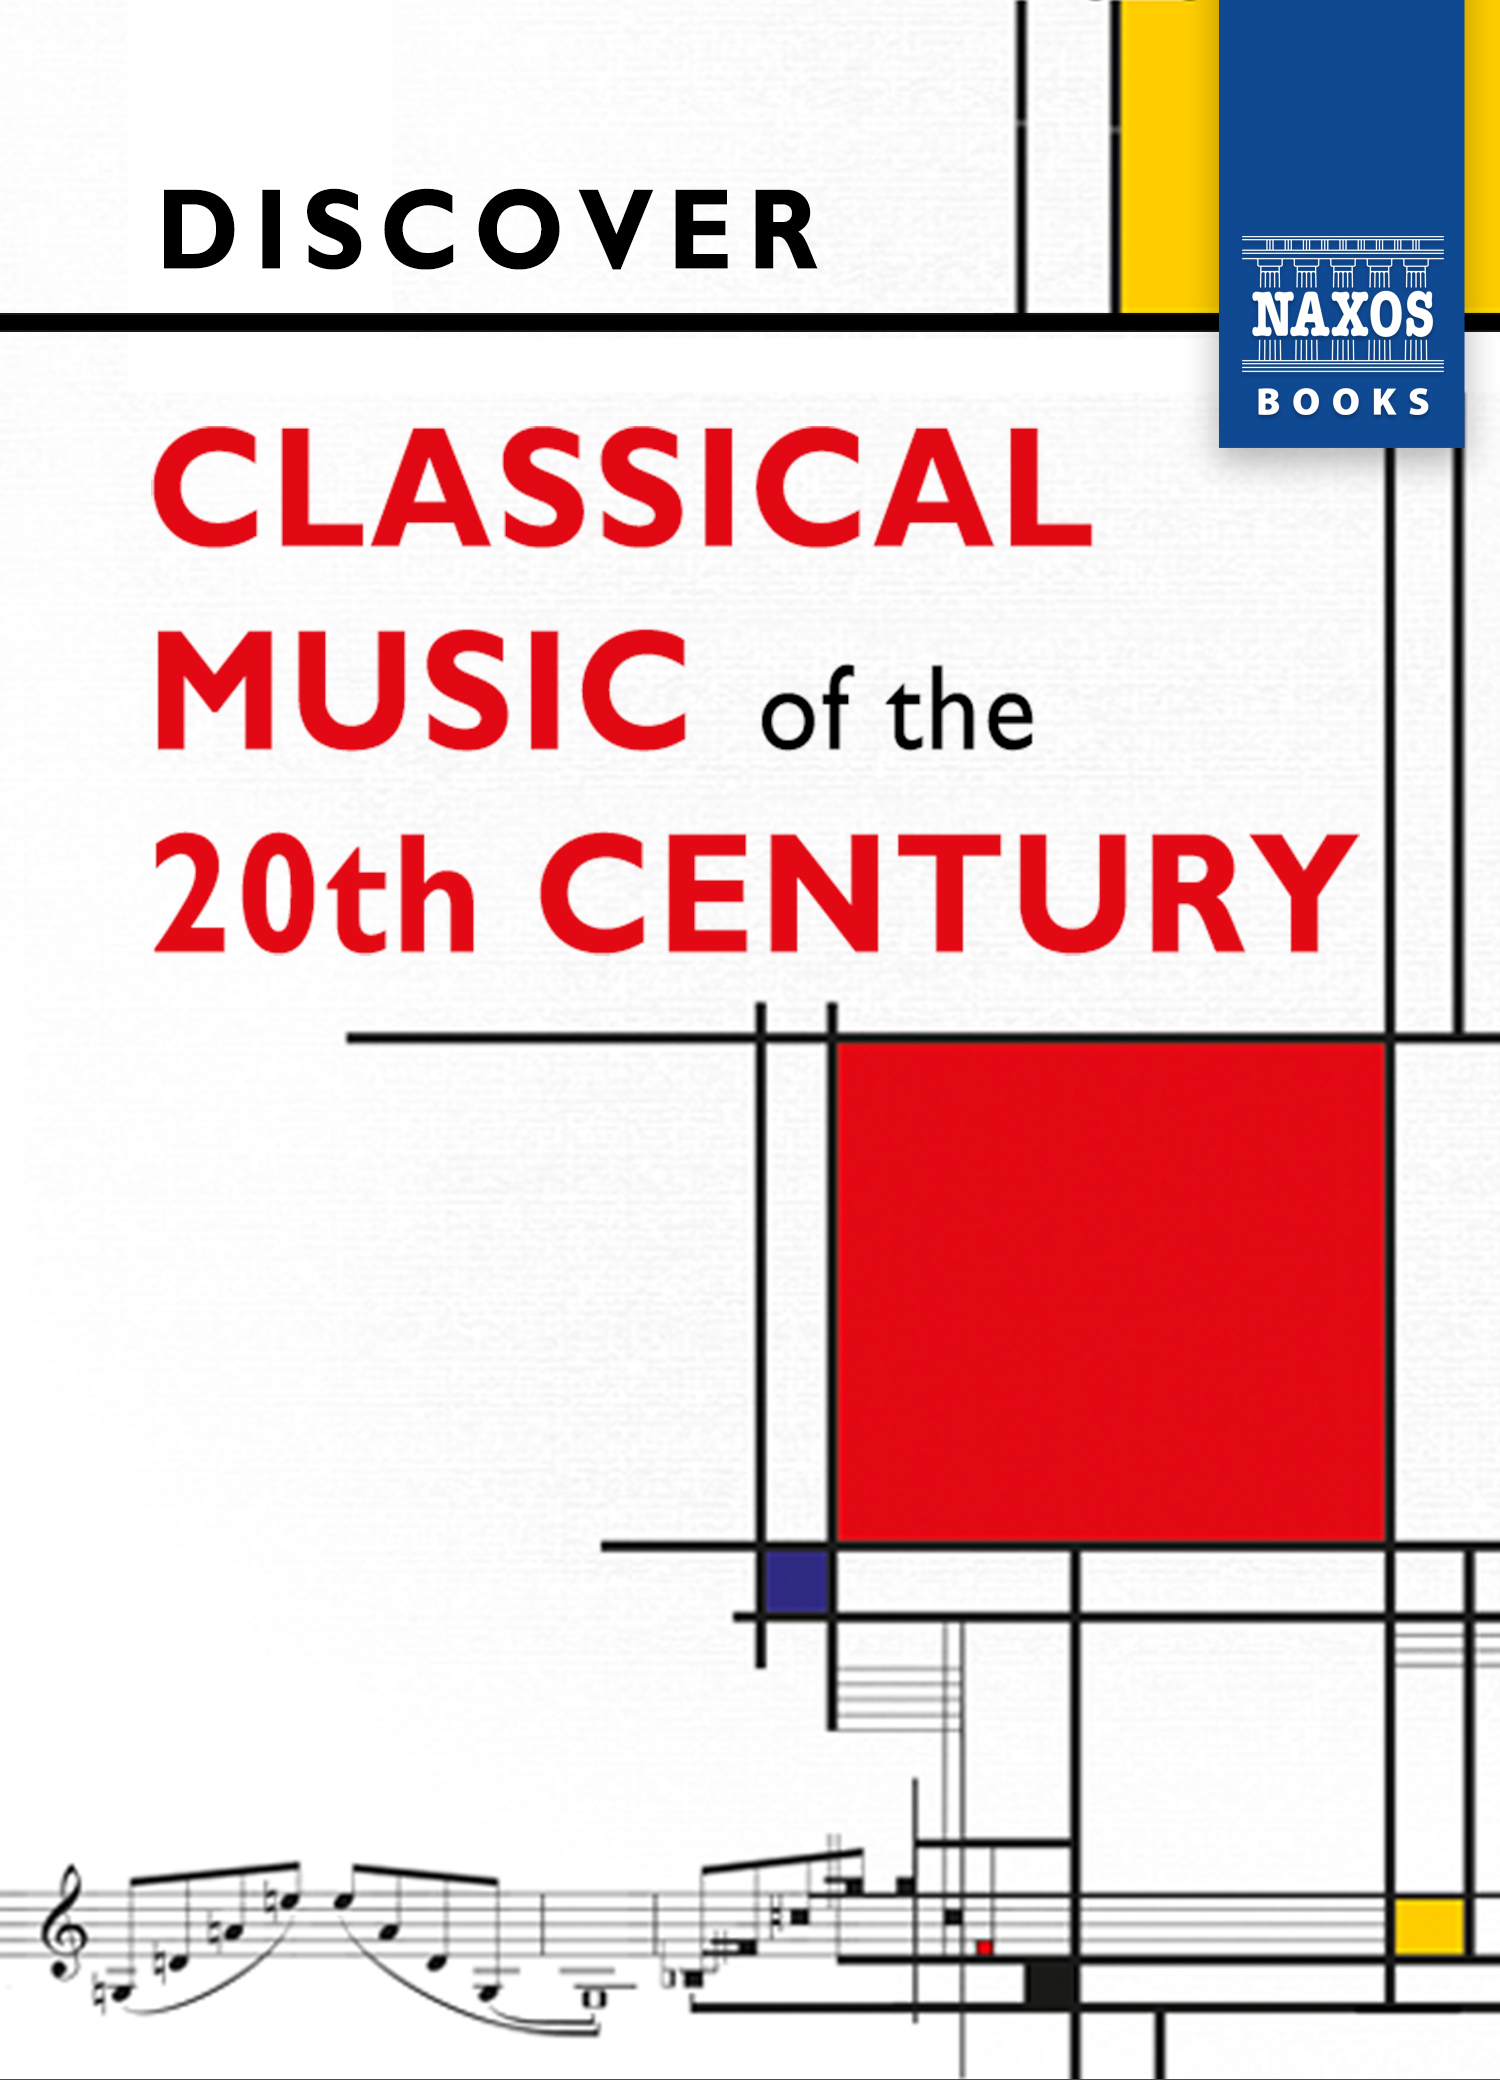 Discover Classical Music of the 20th Century